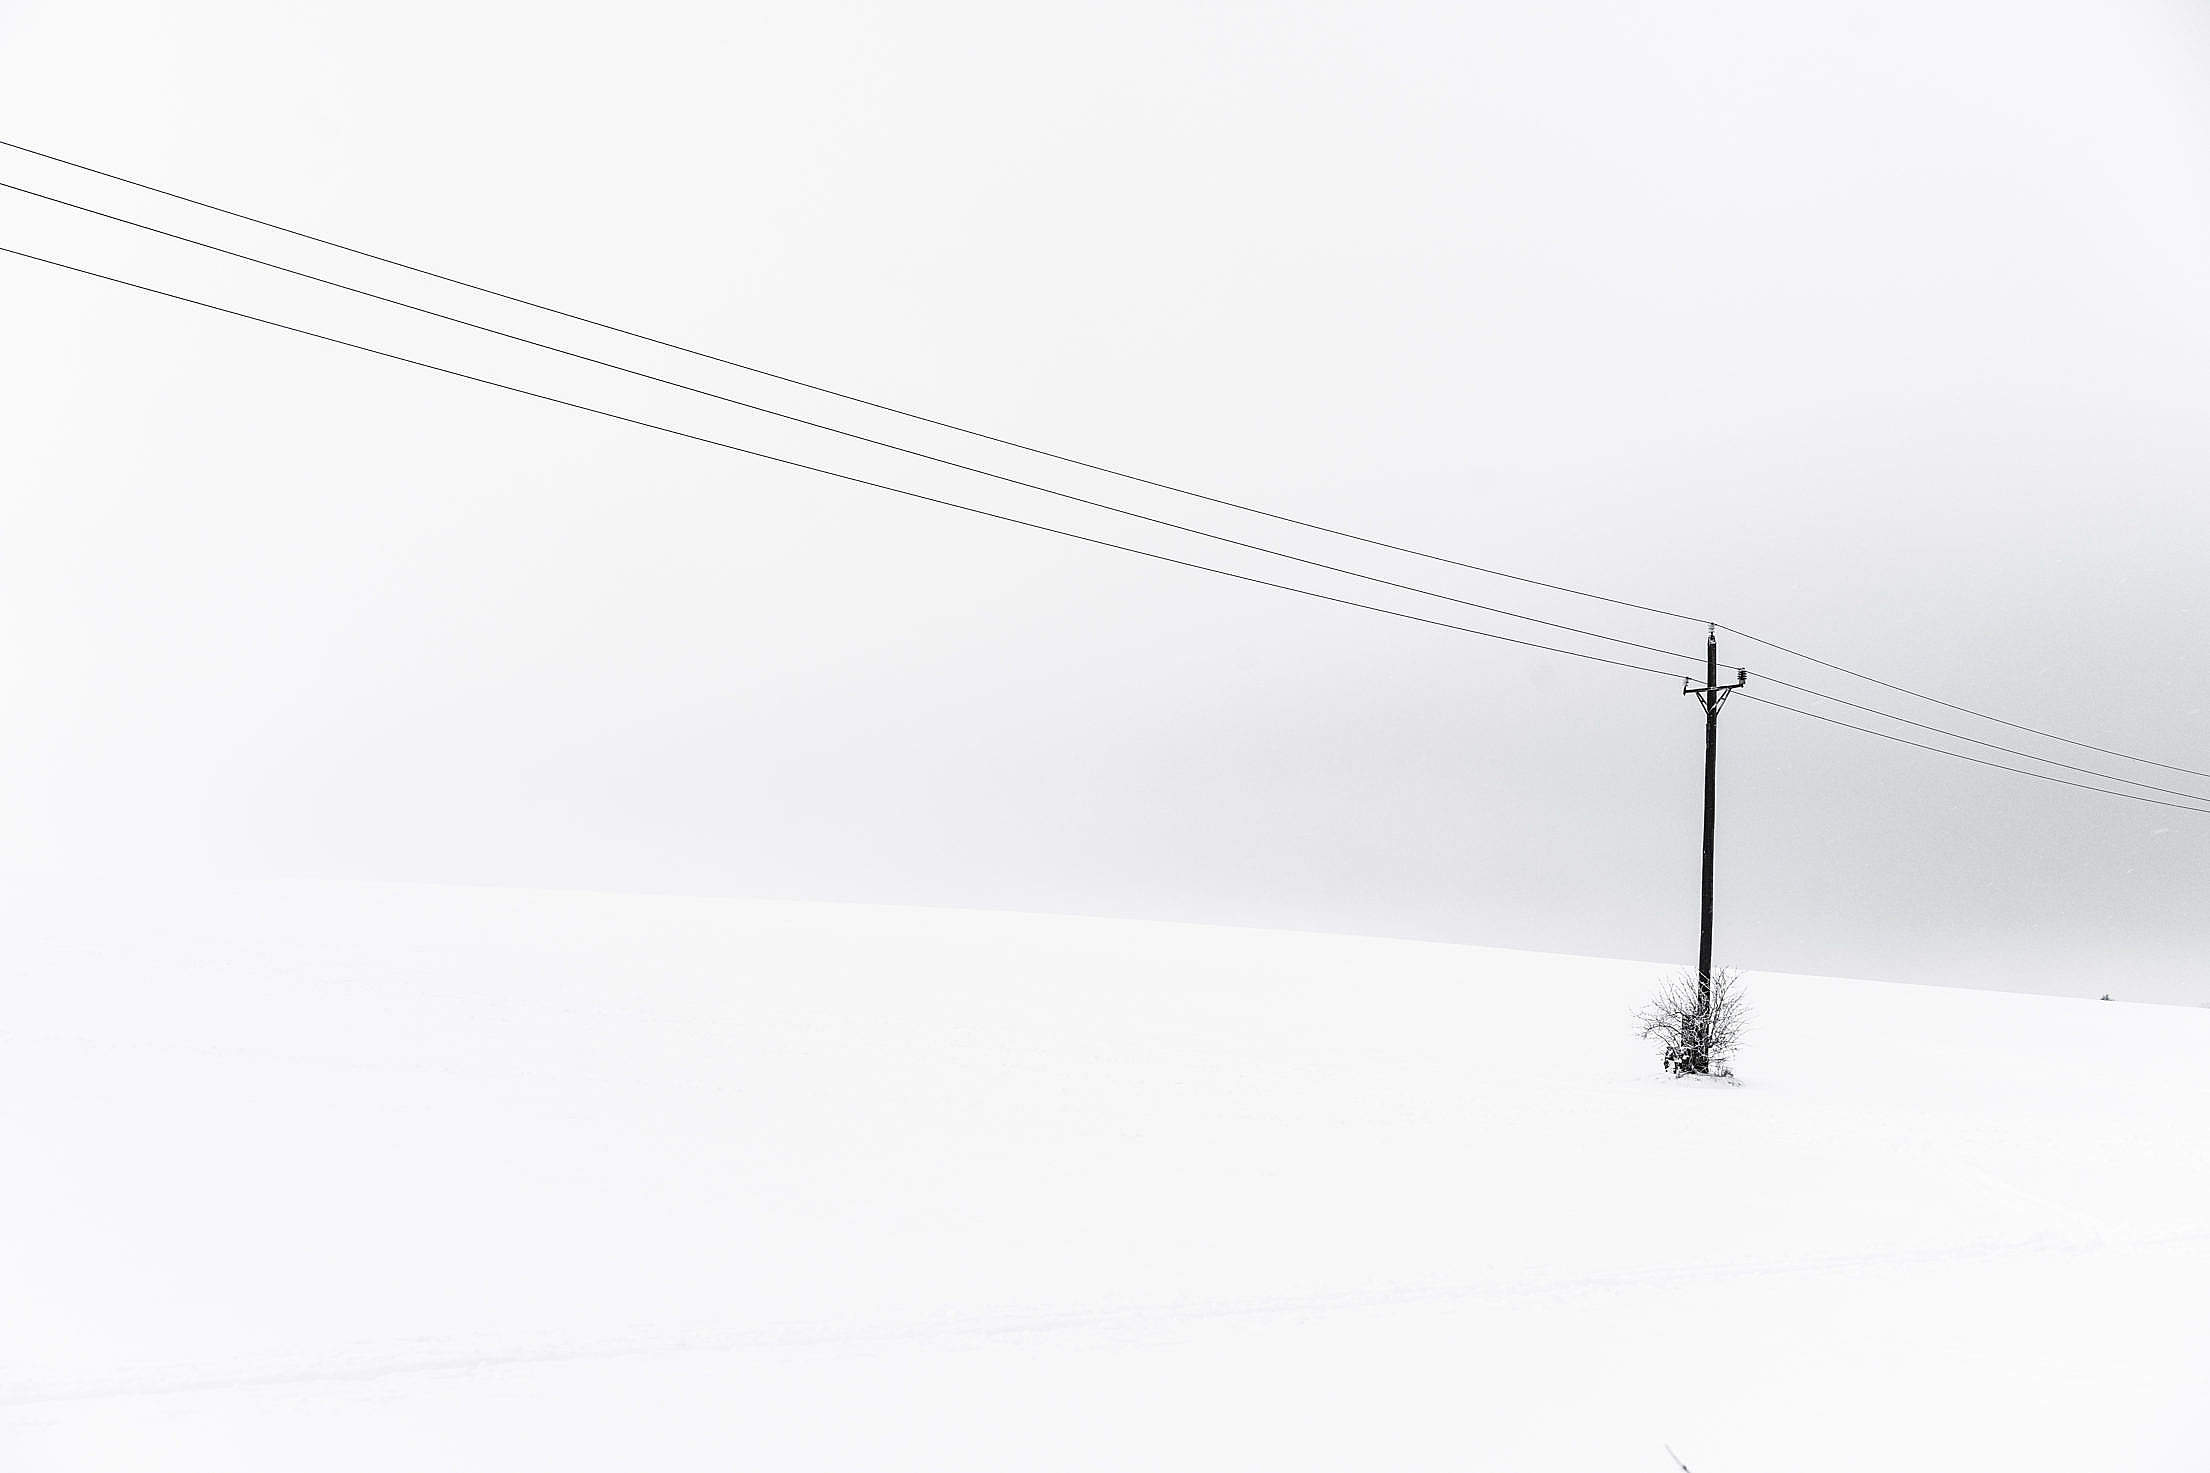 Snow Covered Hill and an Old Power Line Minimalistic Free Stock Photo